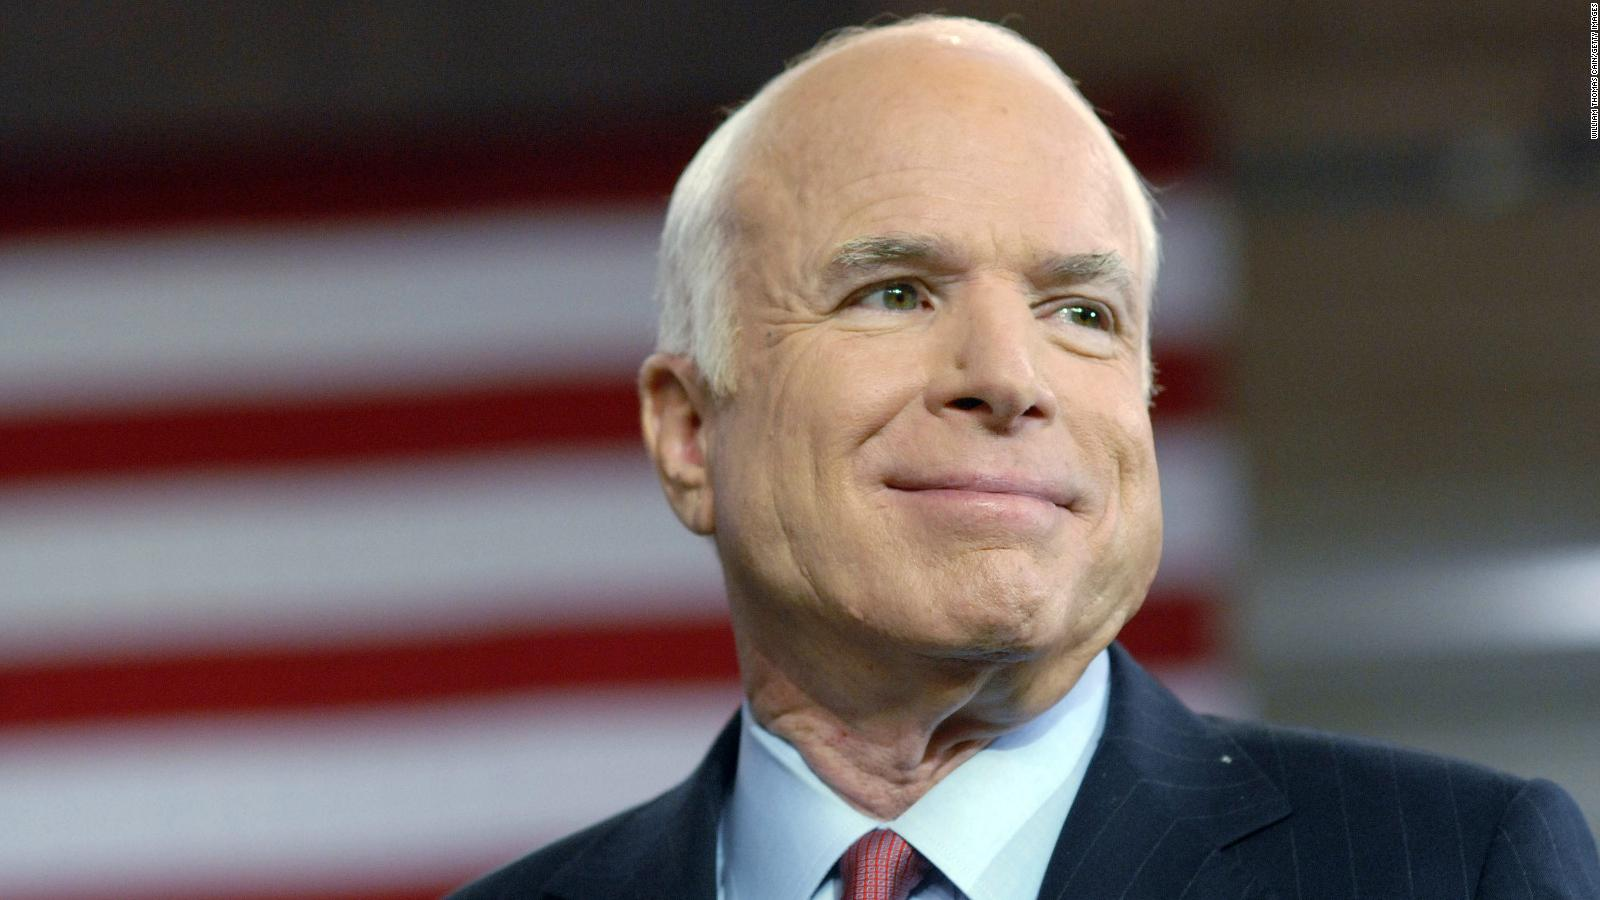 Image result for movie on the life of sen john mccain